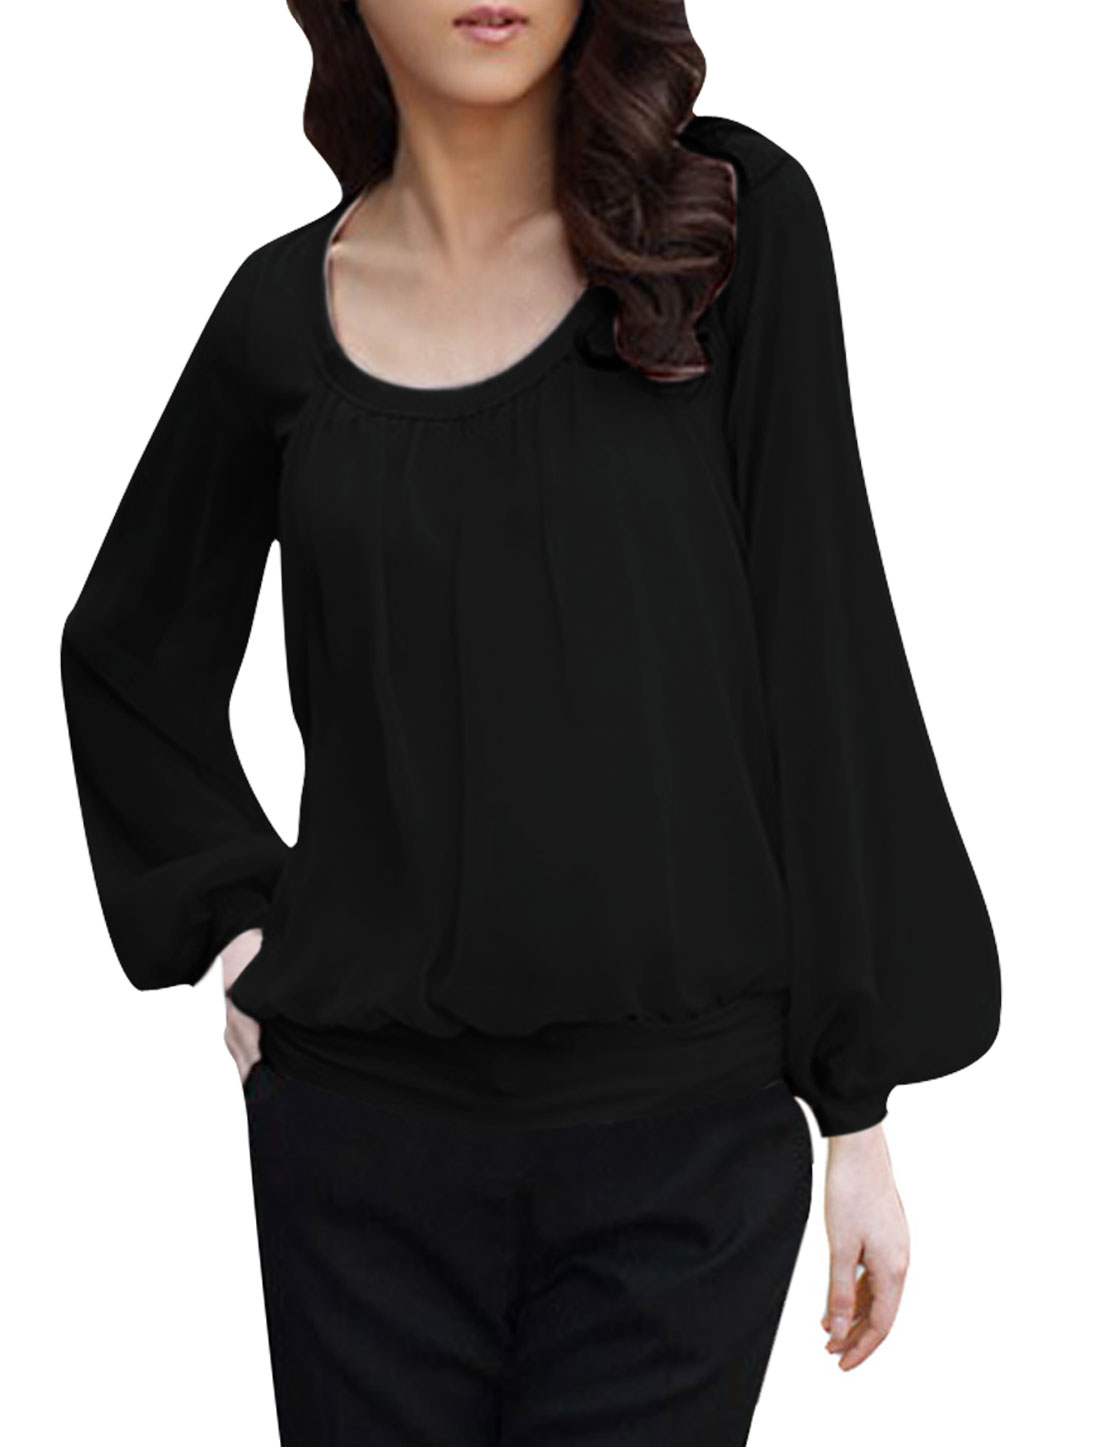 Ladies Semi Sheer Long Sleeve Chiffon Patch Layered Tops Black Blouse XS